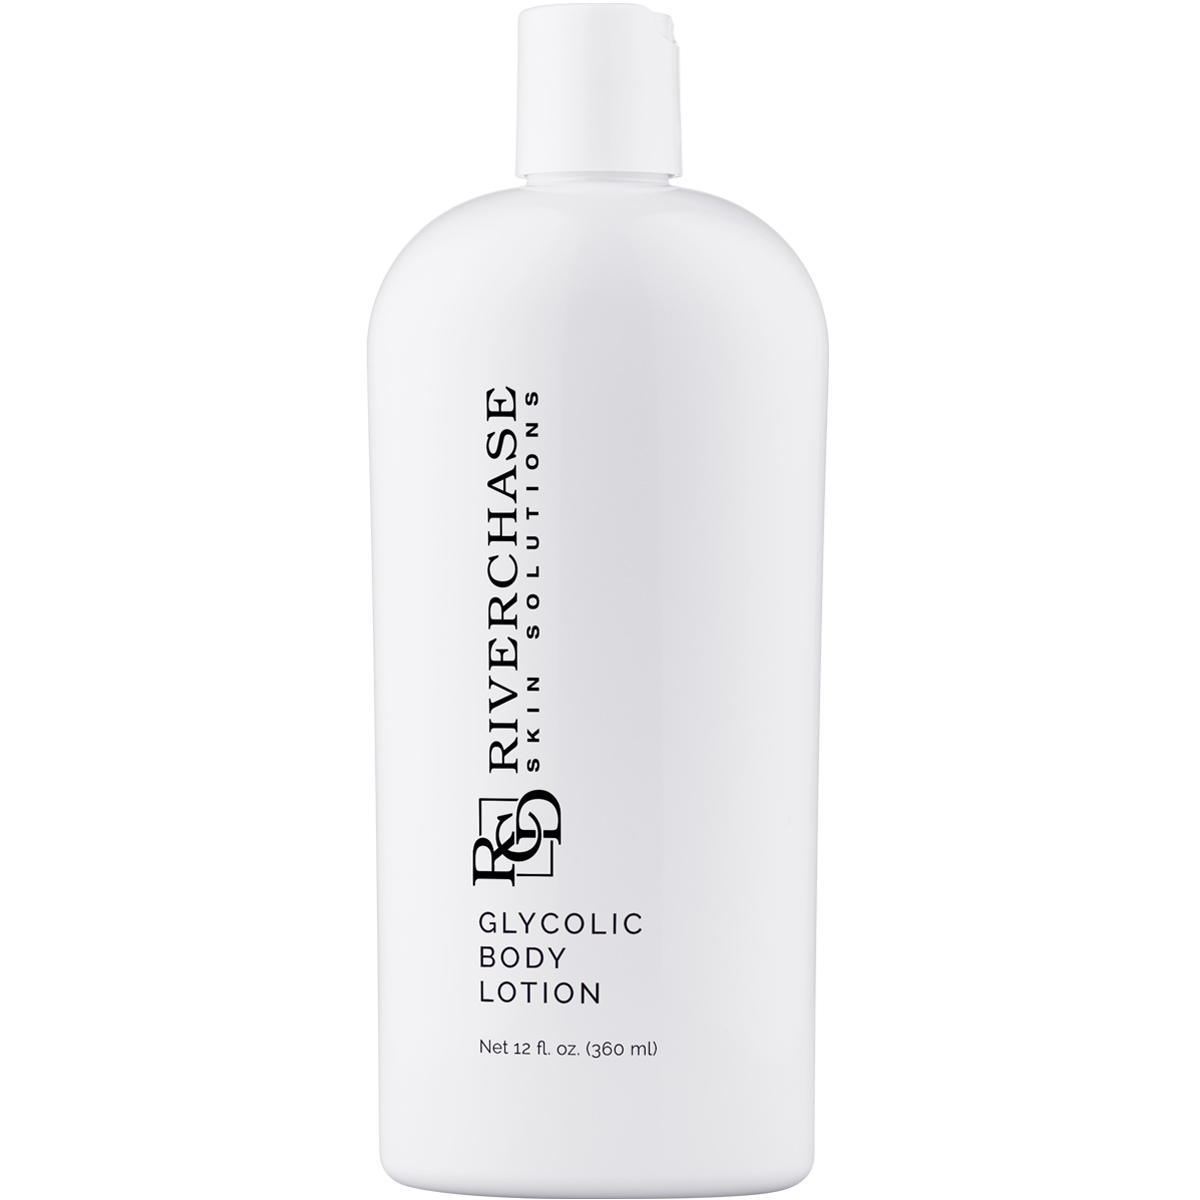 Glycolic Body Lotion